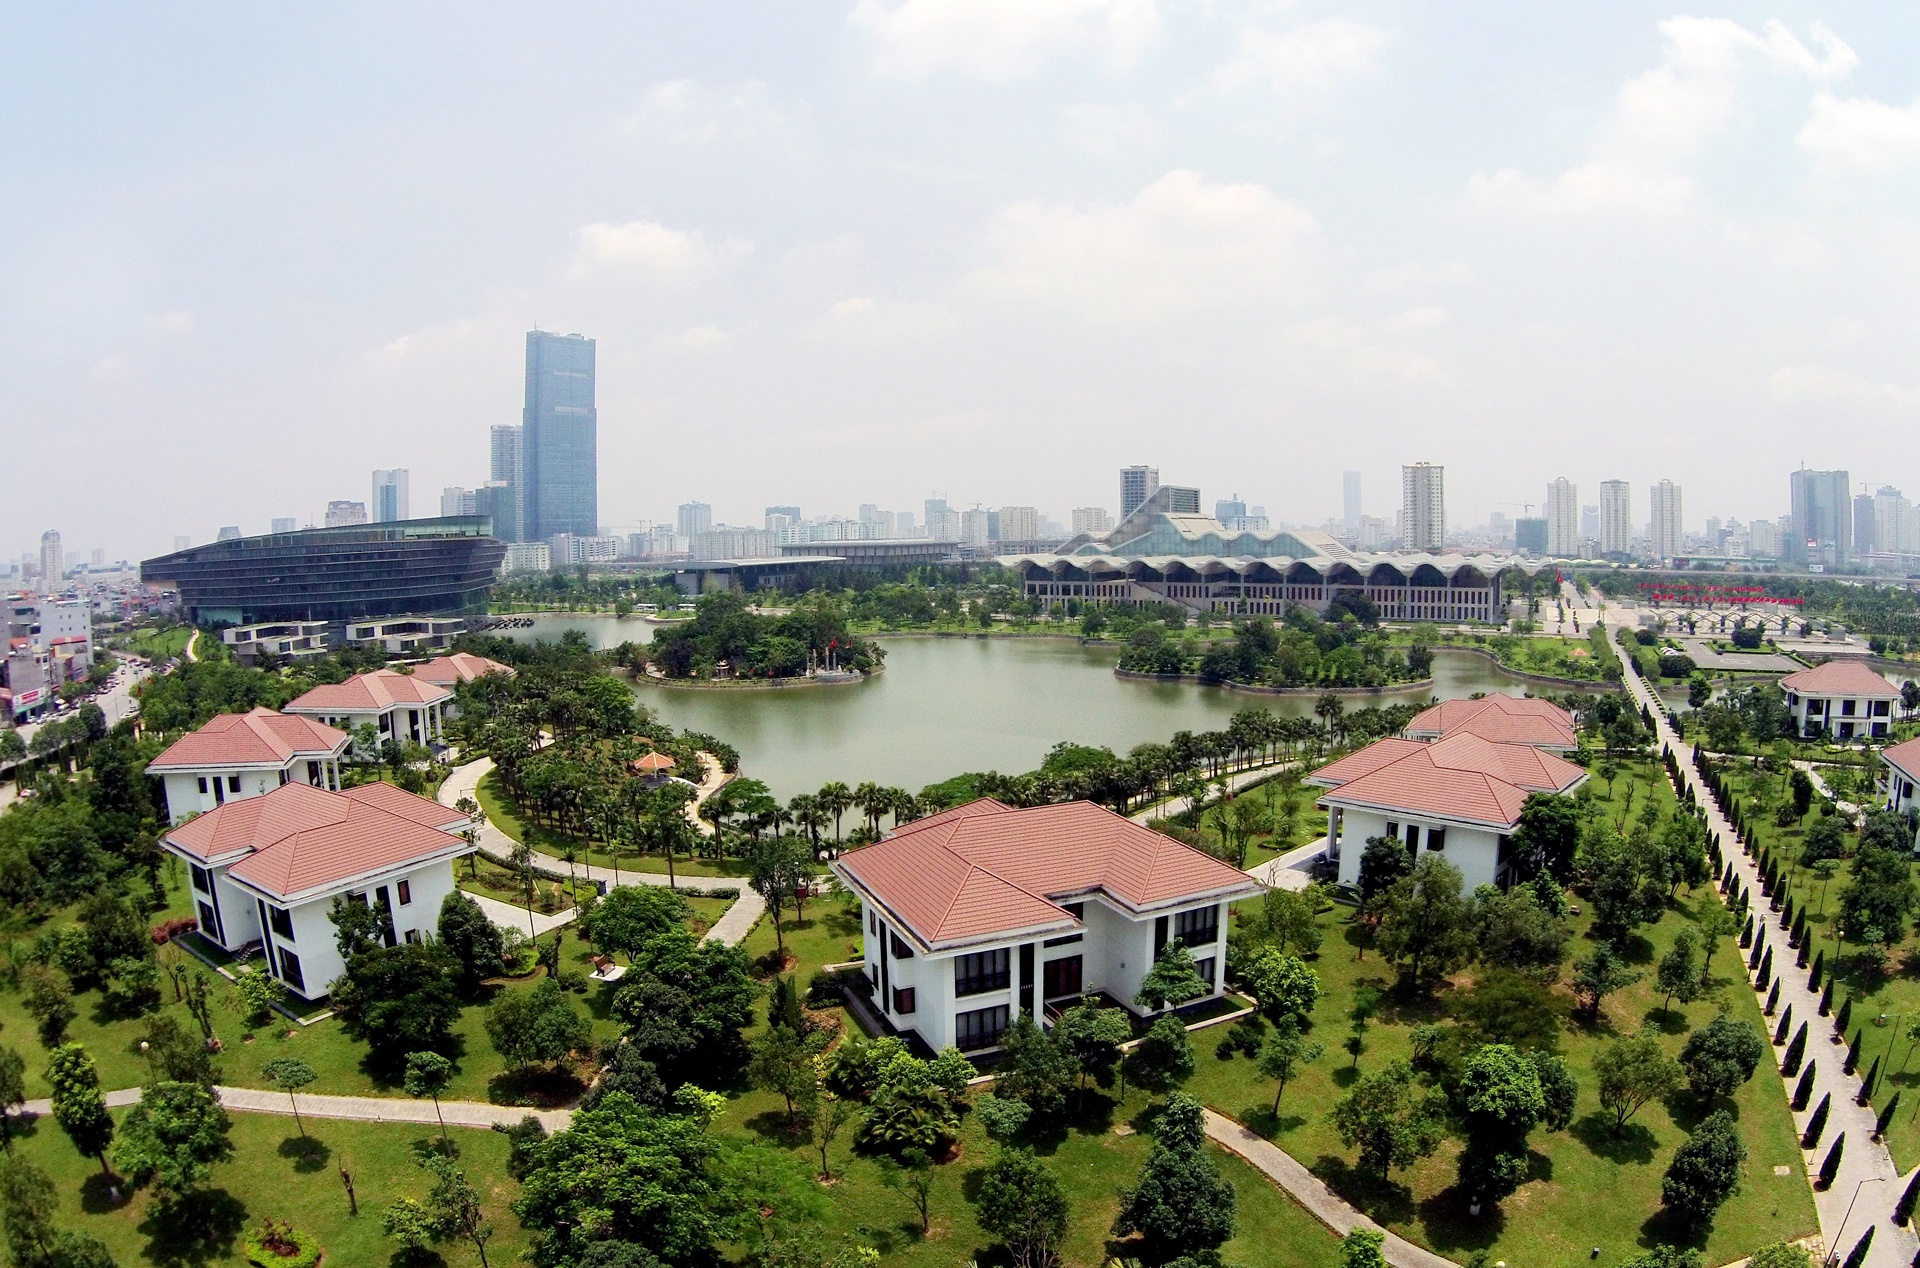 biet thu trong trung tam Hoi nghi quoc gia anh 3